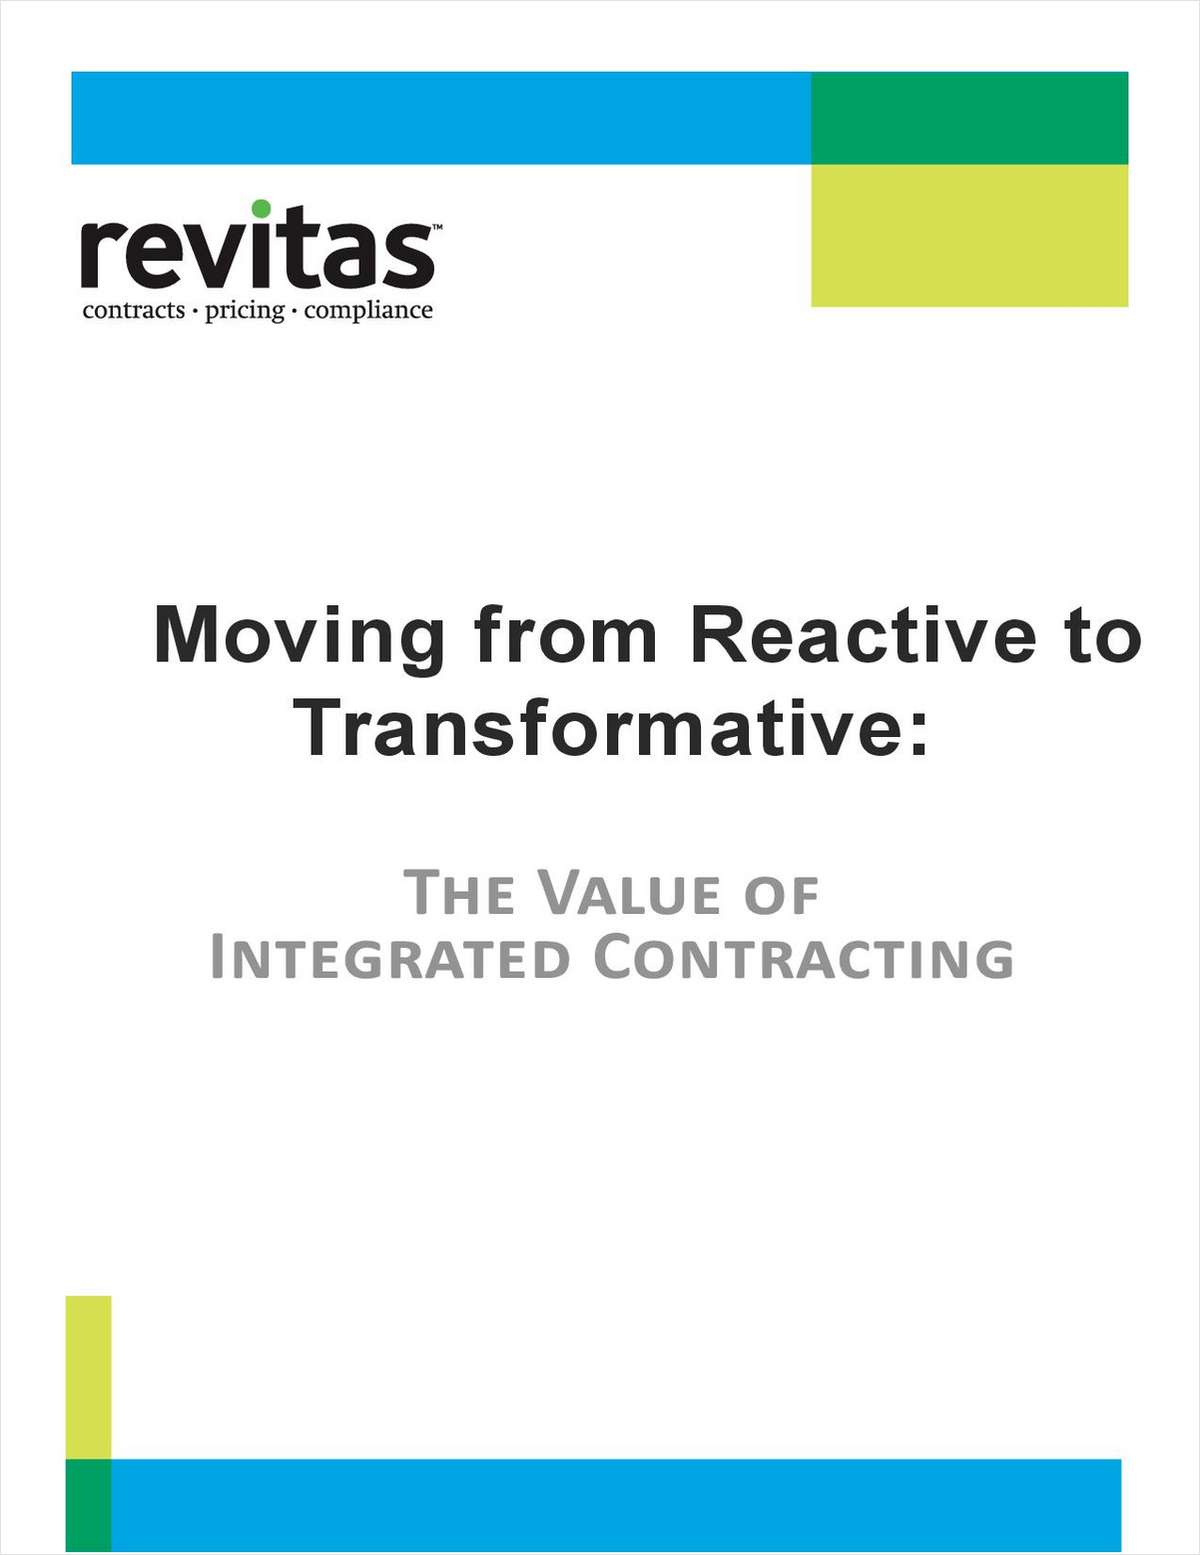 Moving From Reactive to Transformative: The Value of Integrated Contracting